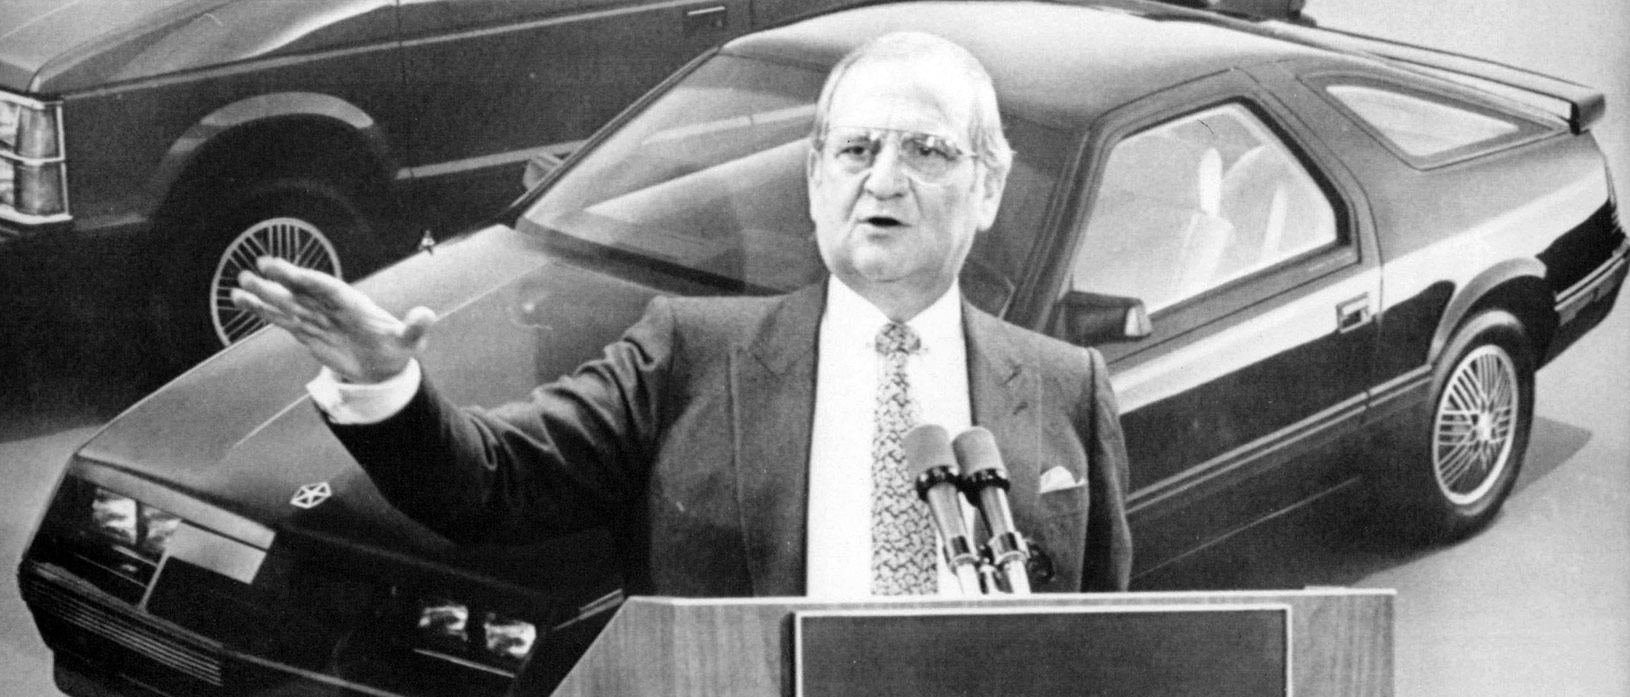 lee iaccoca speaking on a podium